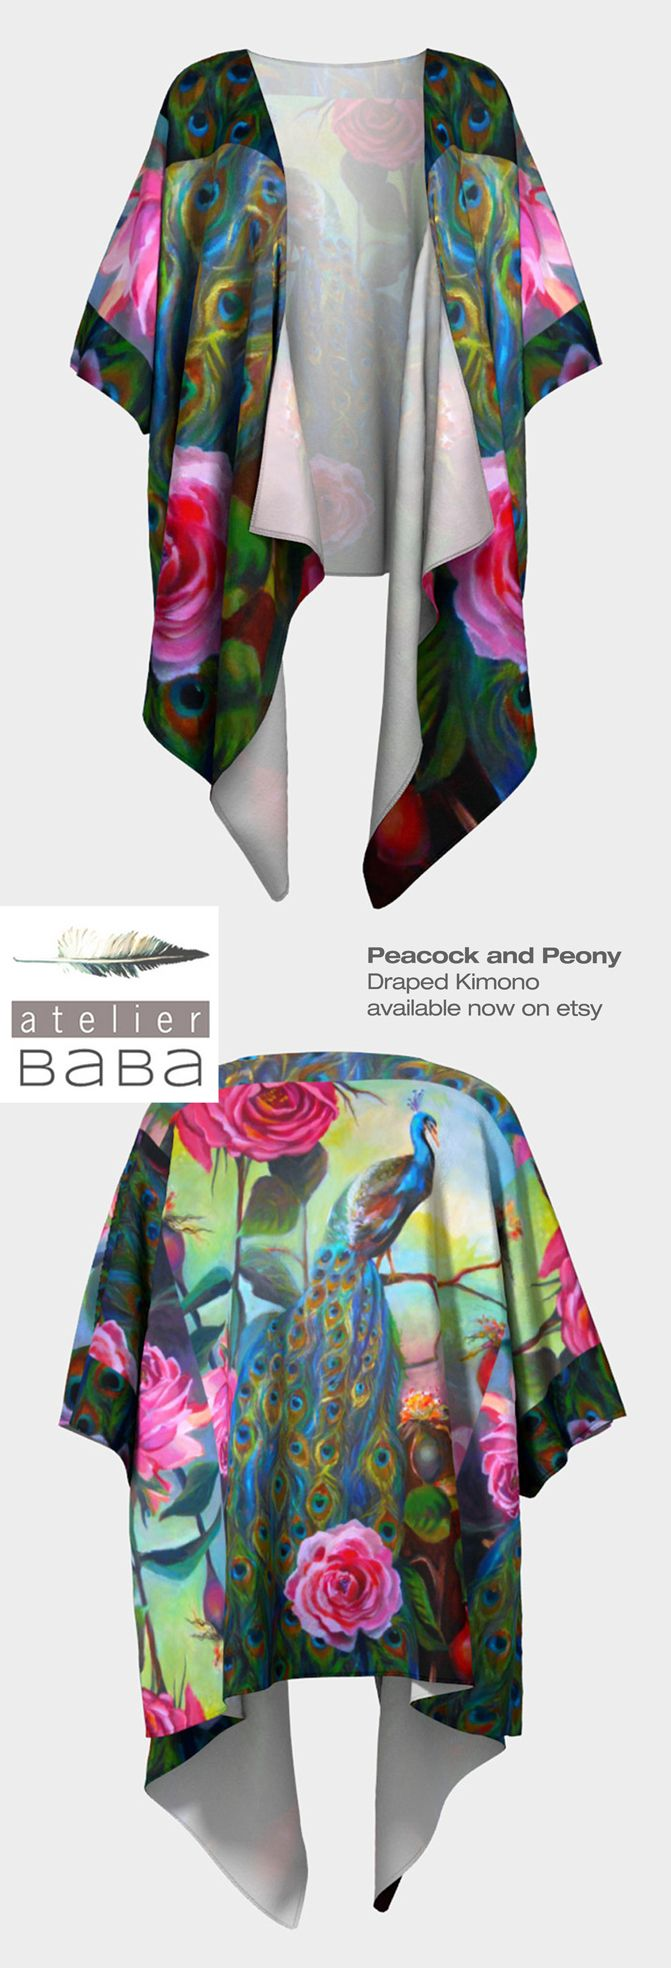 Peacock and Peony Draped Kimono by AtelierBaba - Your choice of silky knit or poly chiffon fabric - available on etsy